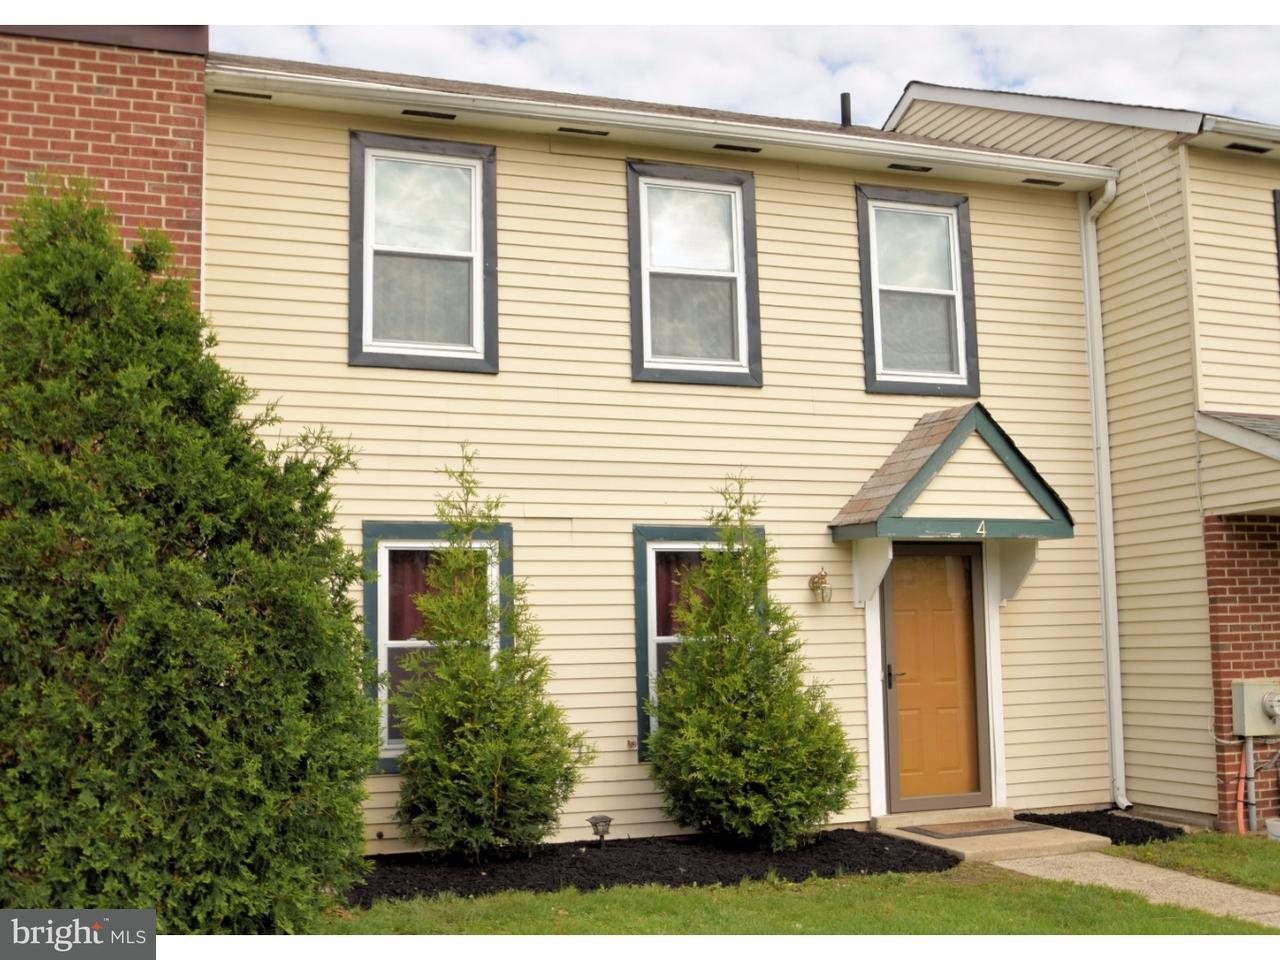 Townhouse for Rent at 4 CAVALRY Drive Horsham, Pennsylvania 19044 United States